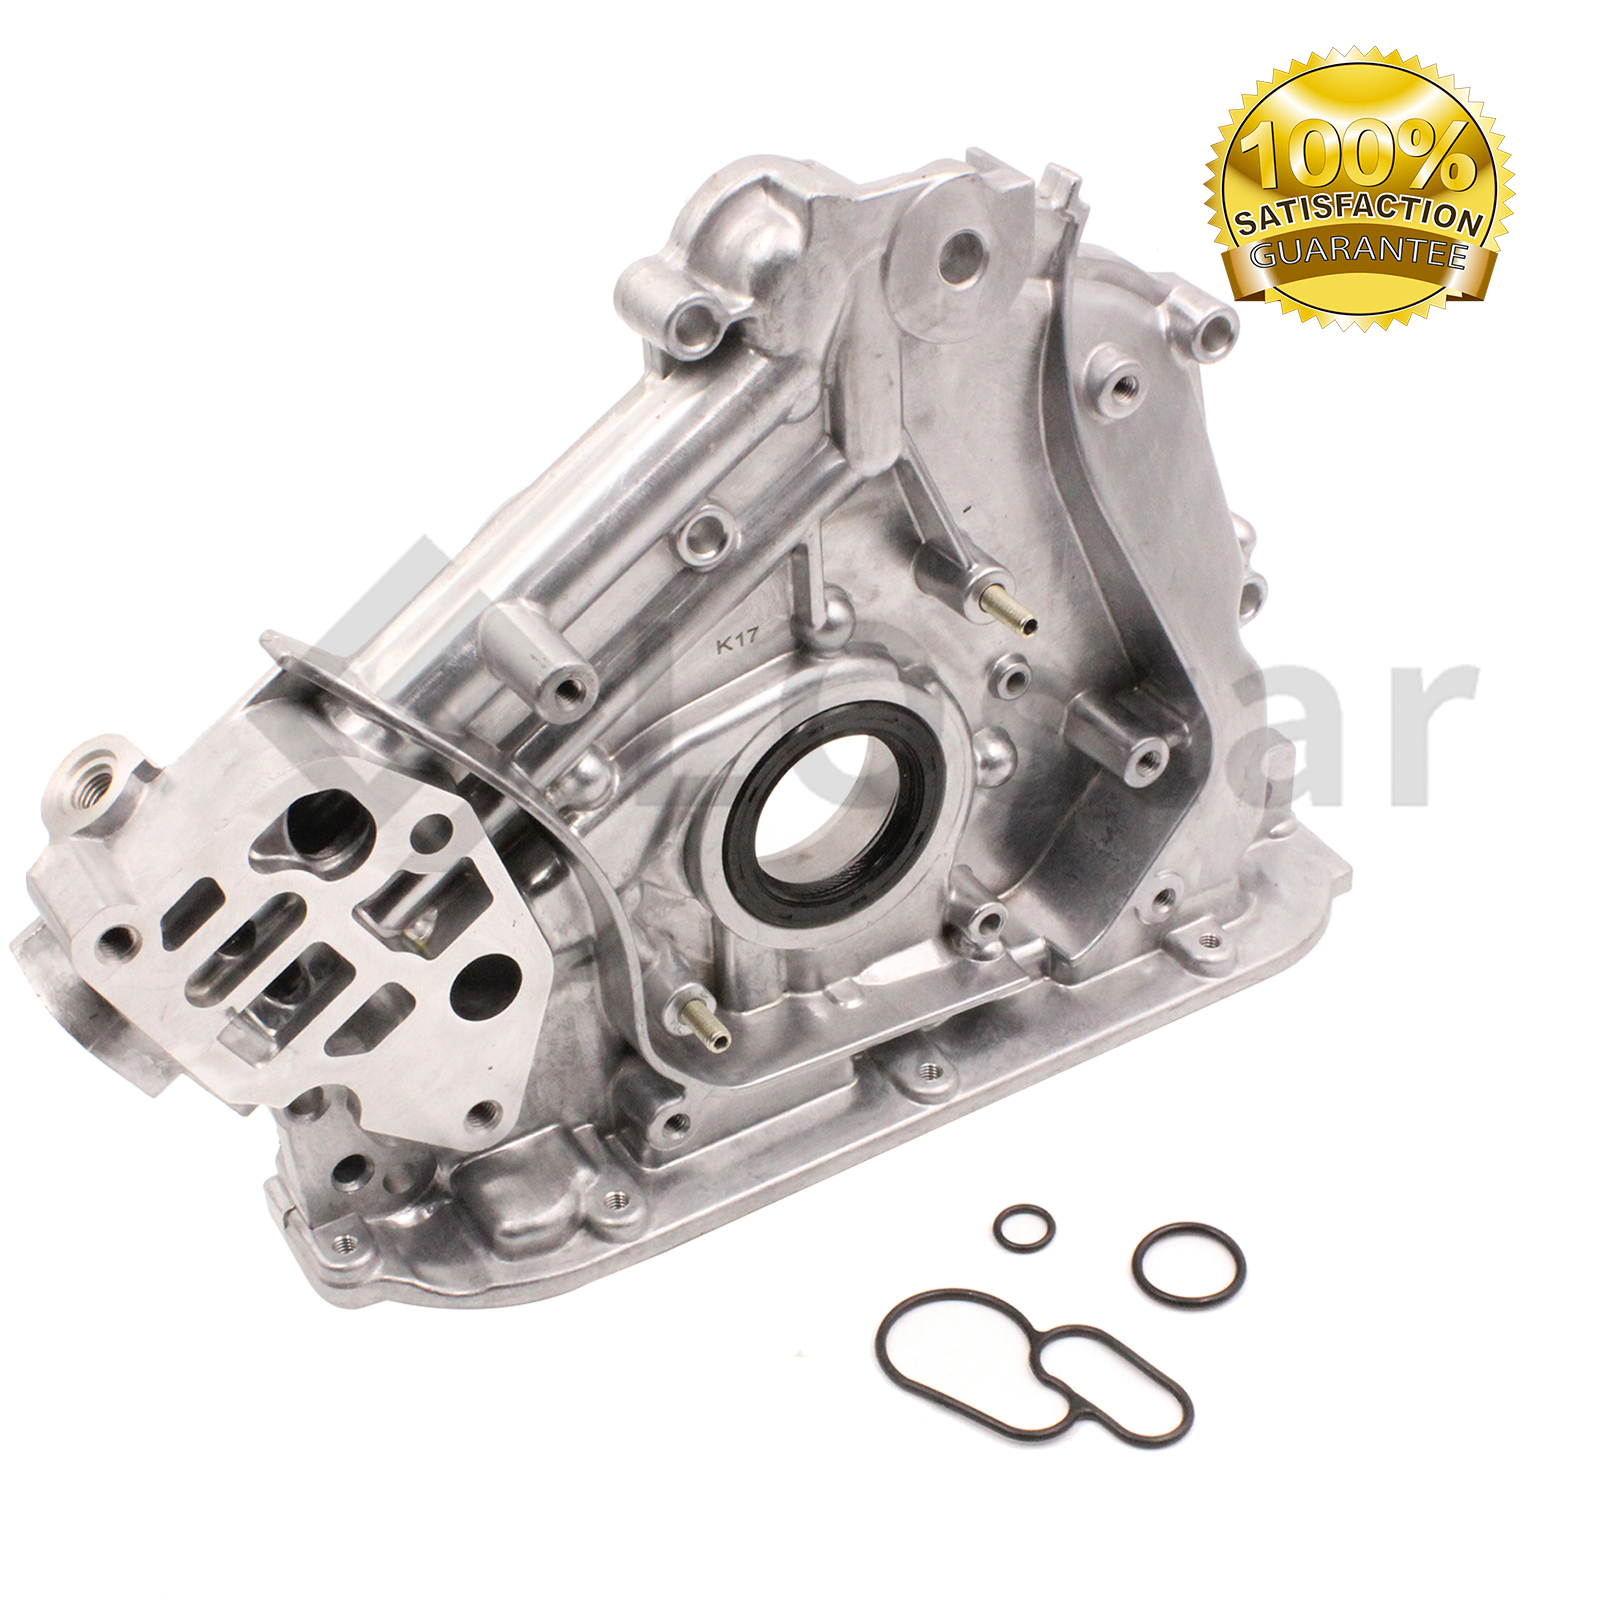 Oil Pump For 97-04 Acura Honda 3.0 3.2 3.5 J30A1 J32A1 J32A2 J35A1 J35A4 J35A3